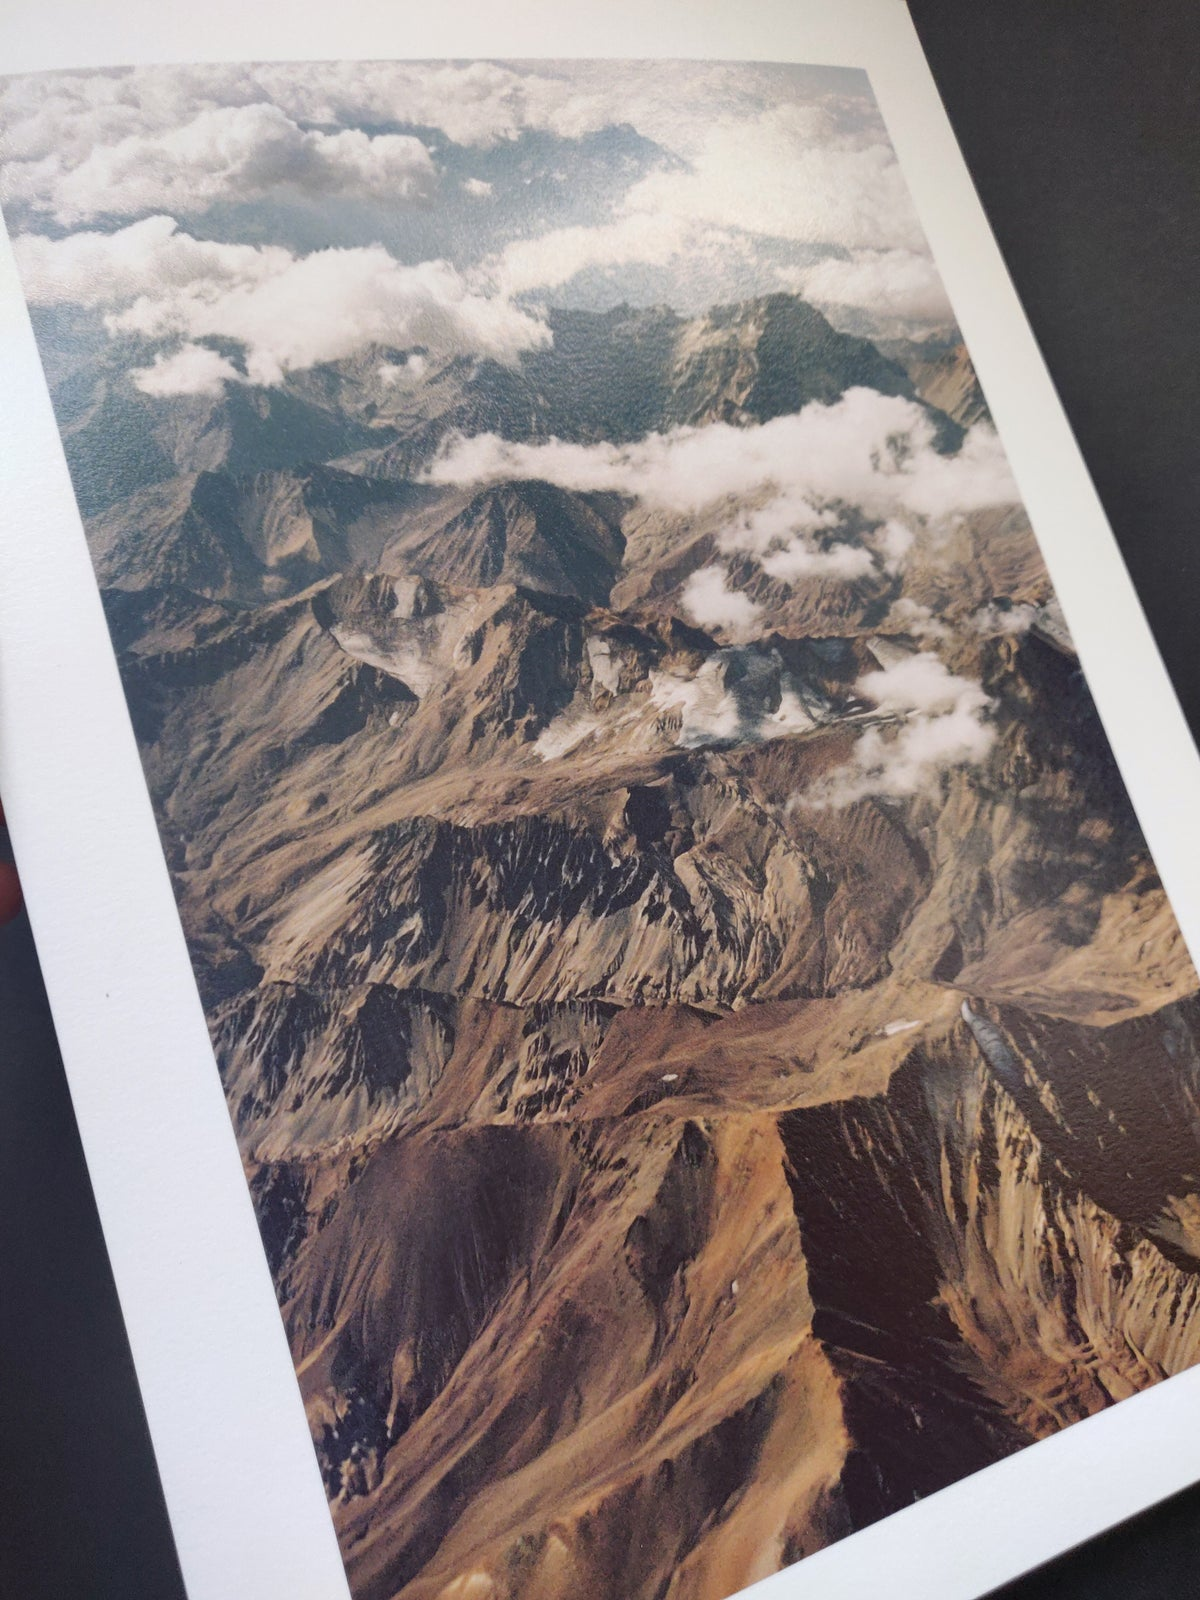 Image of Archival print